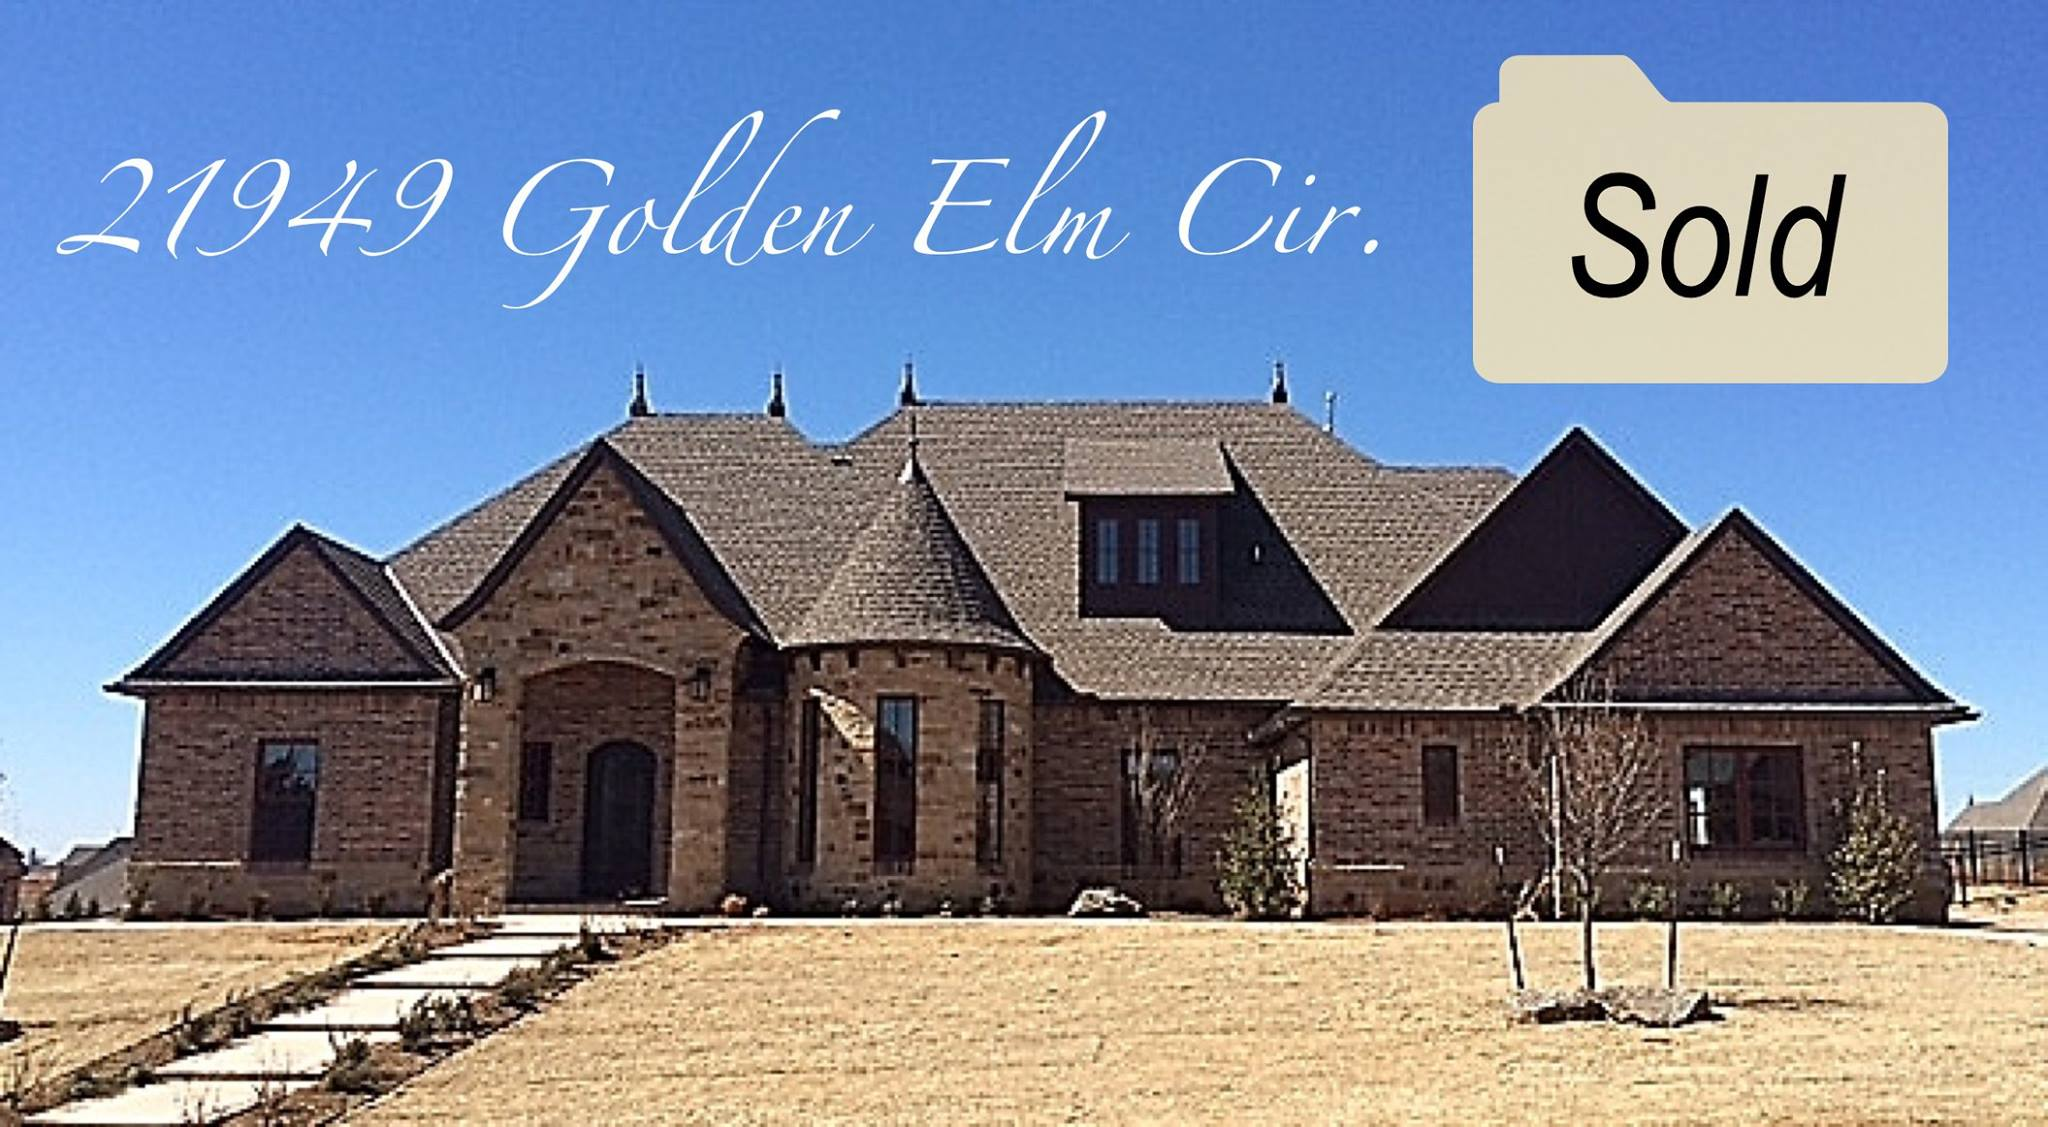 21949 Golden Elm Cir